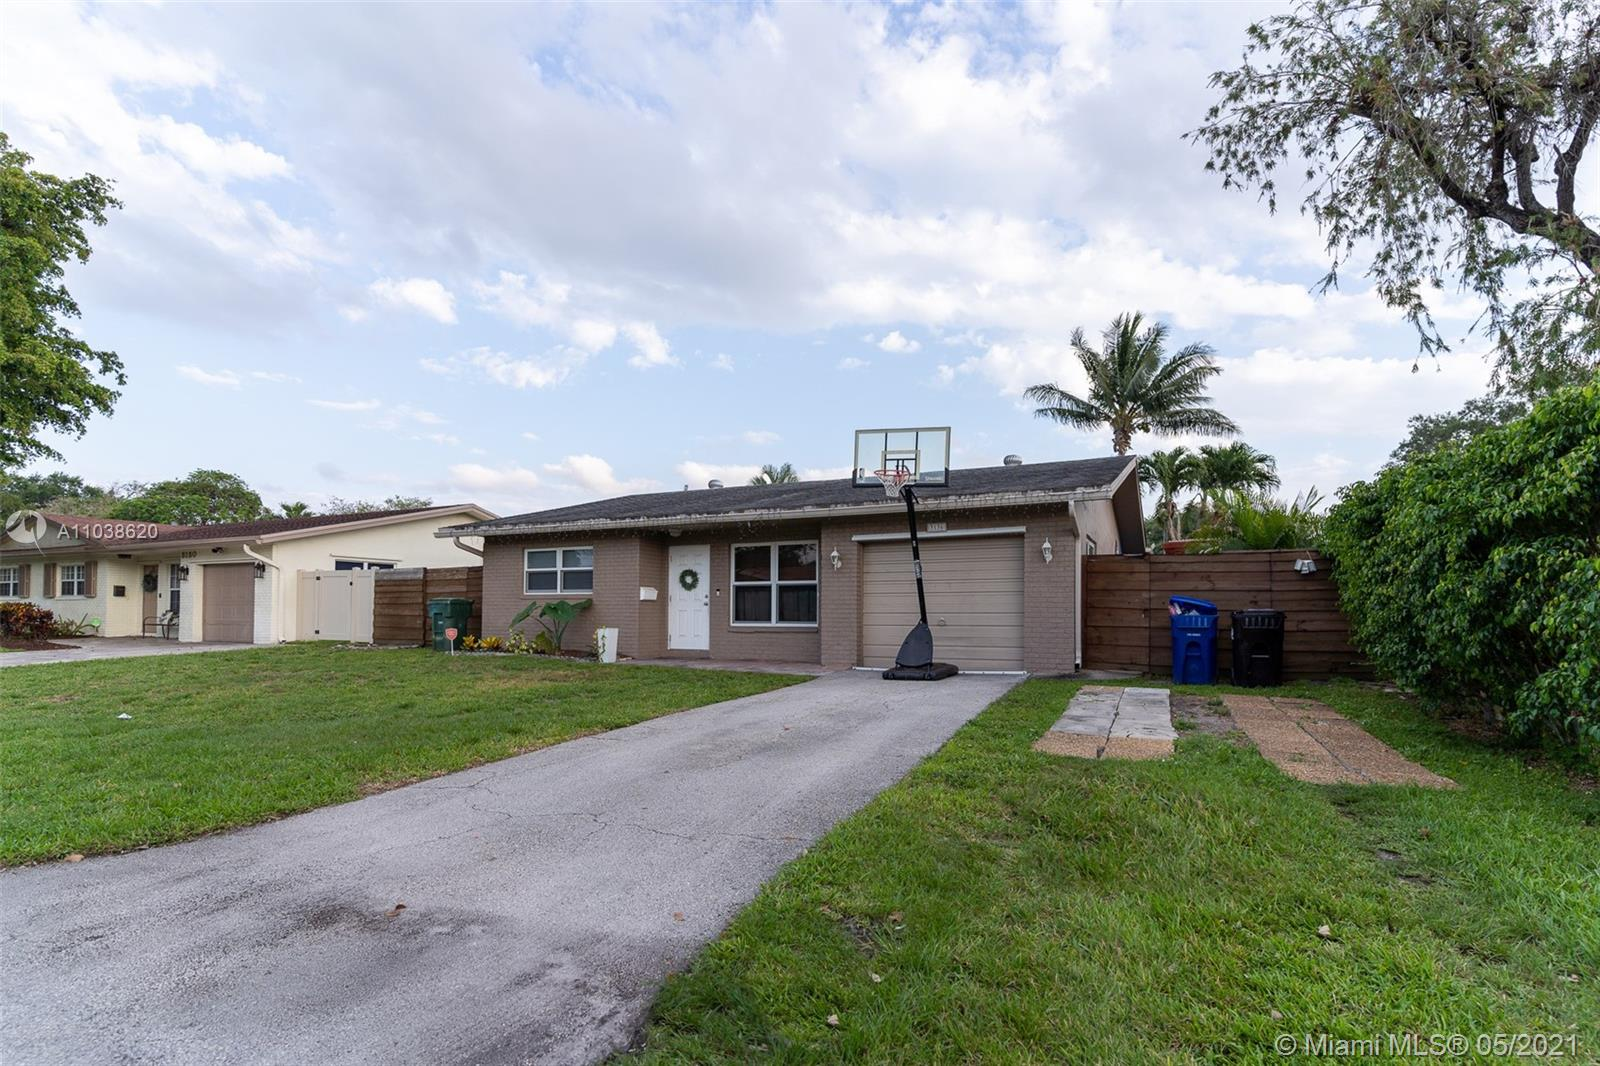 Palm Aire Village, 3136 NW 69th St, Fort Lauderdale, Florida 33309